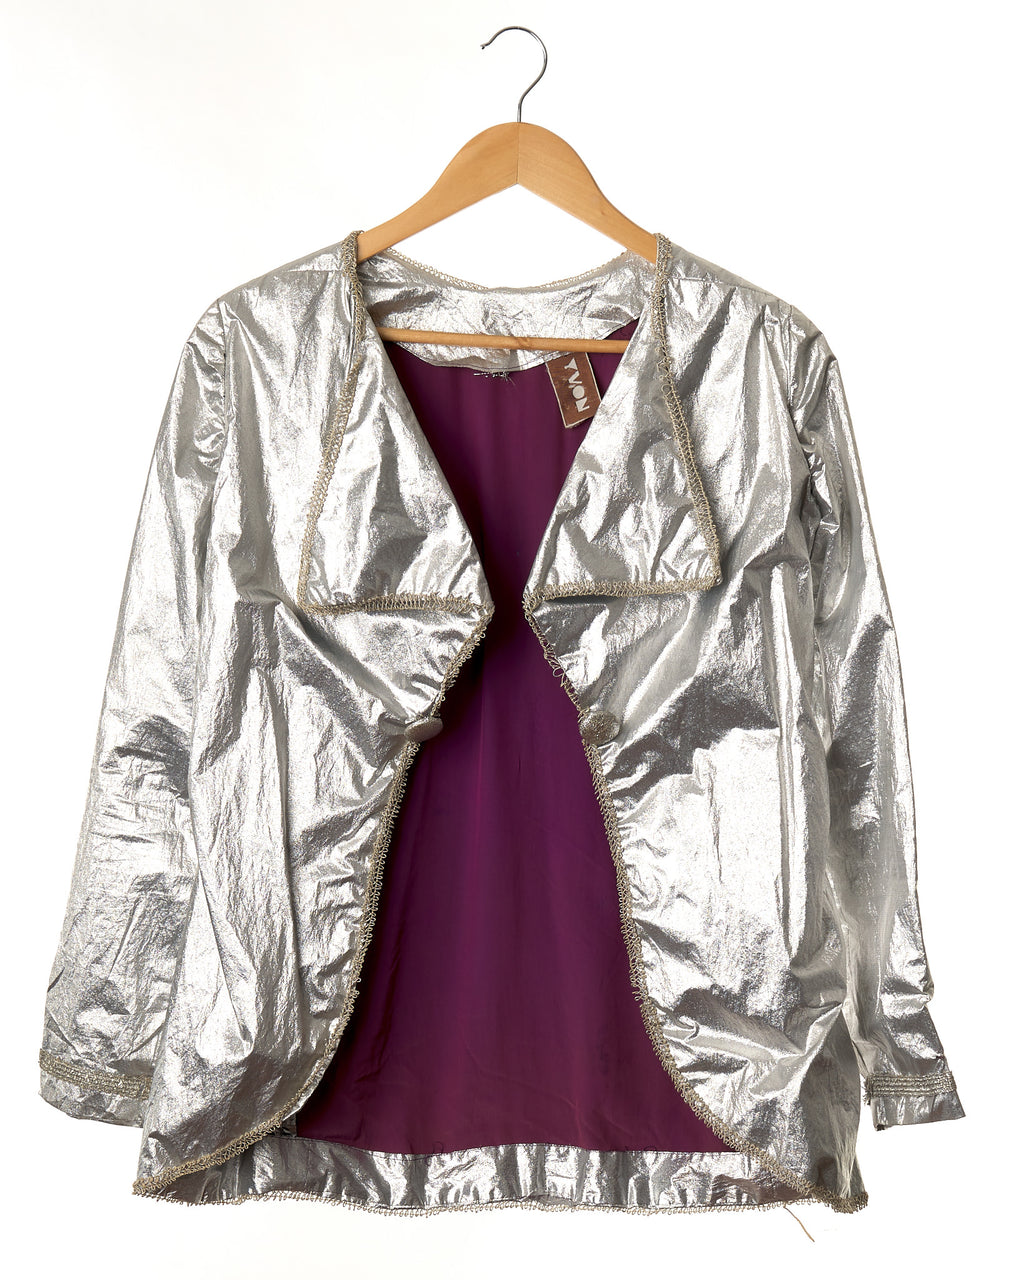 Metallic Silver Vintage Jacket